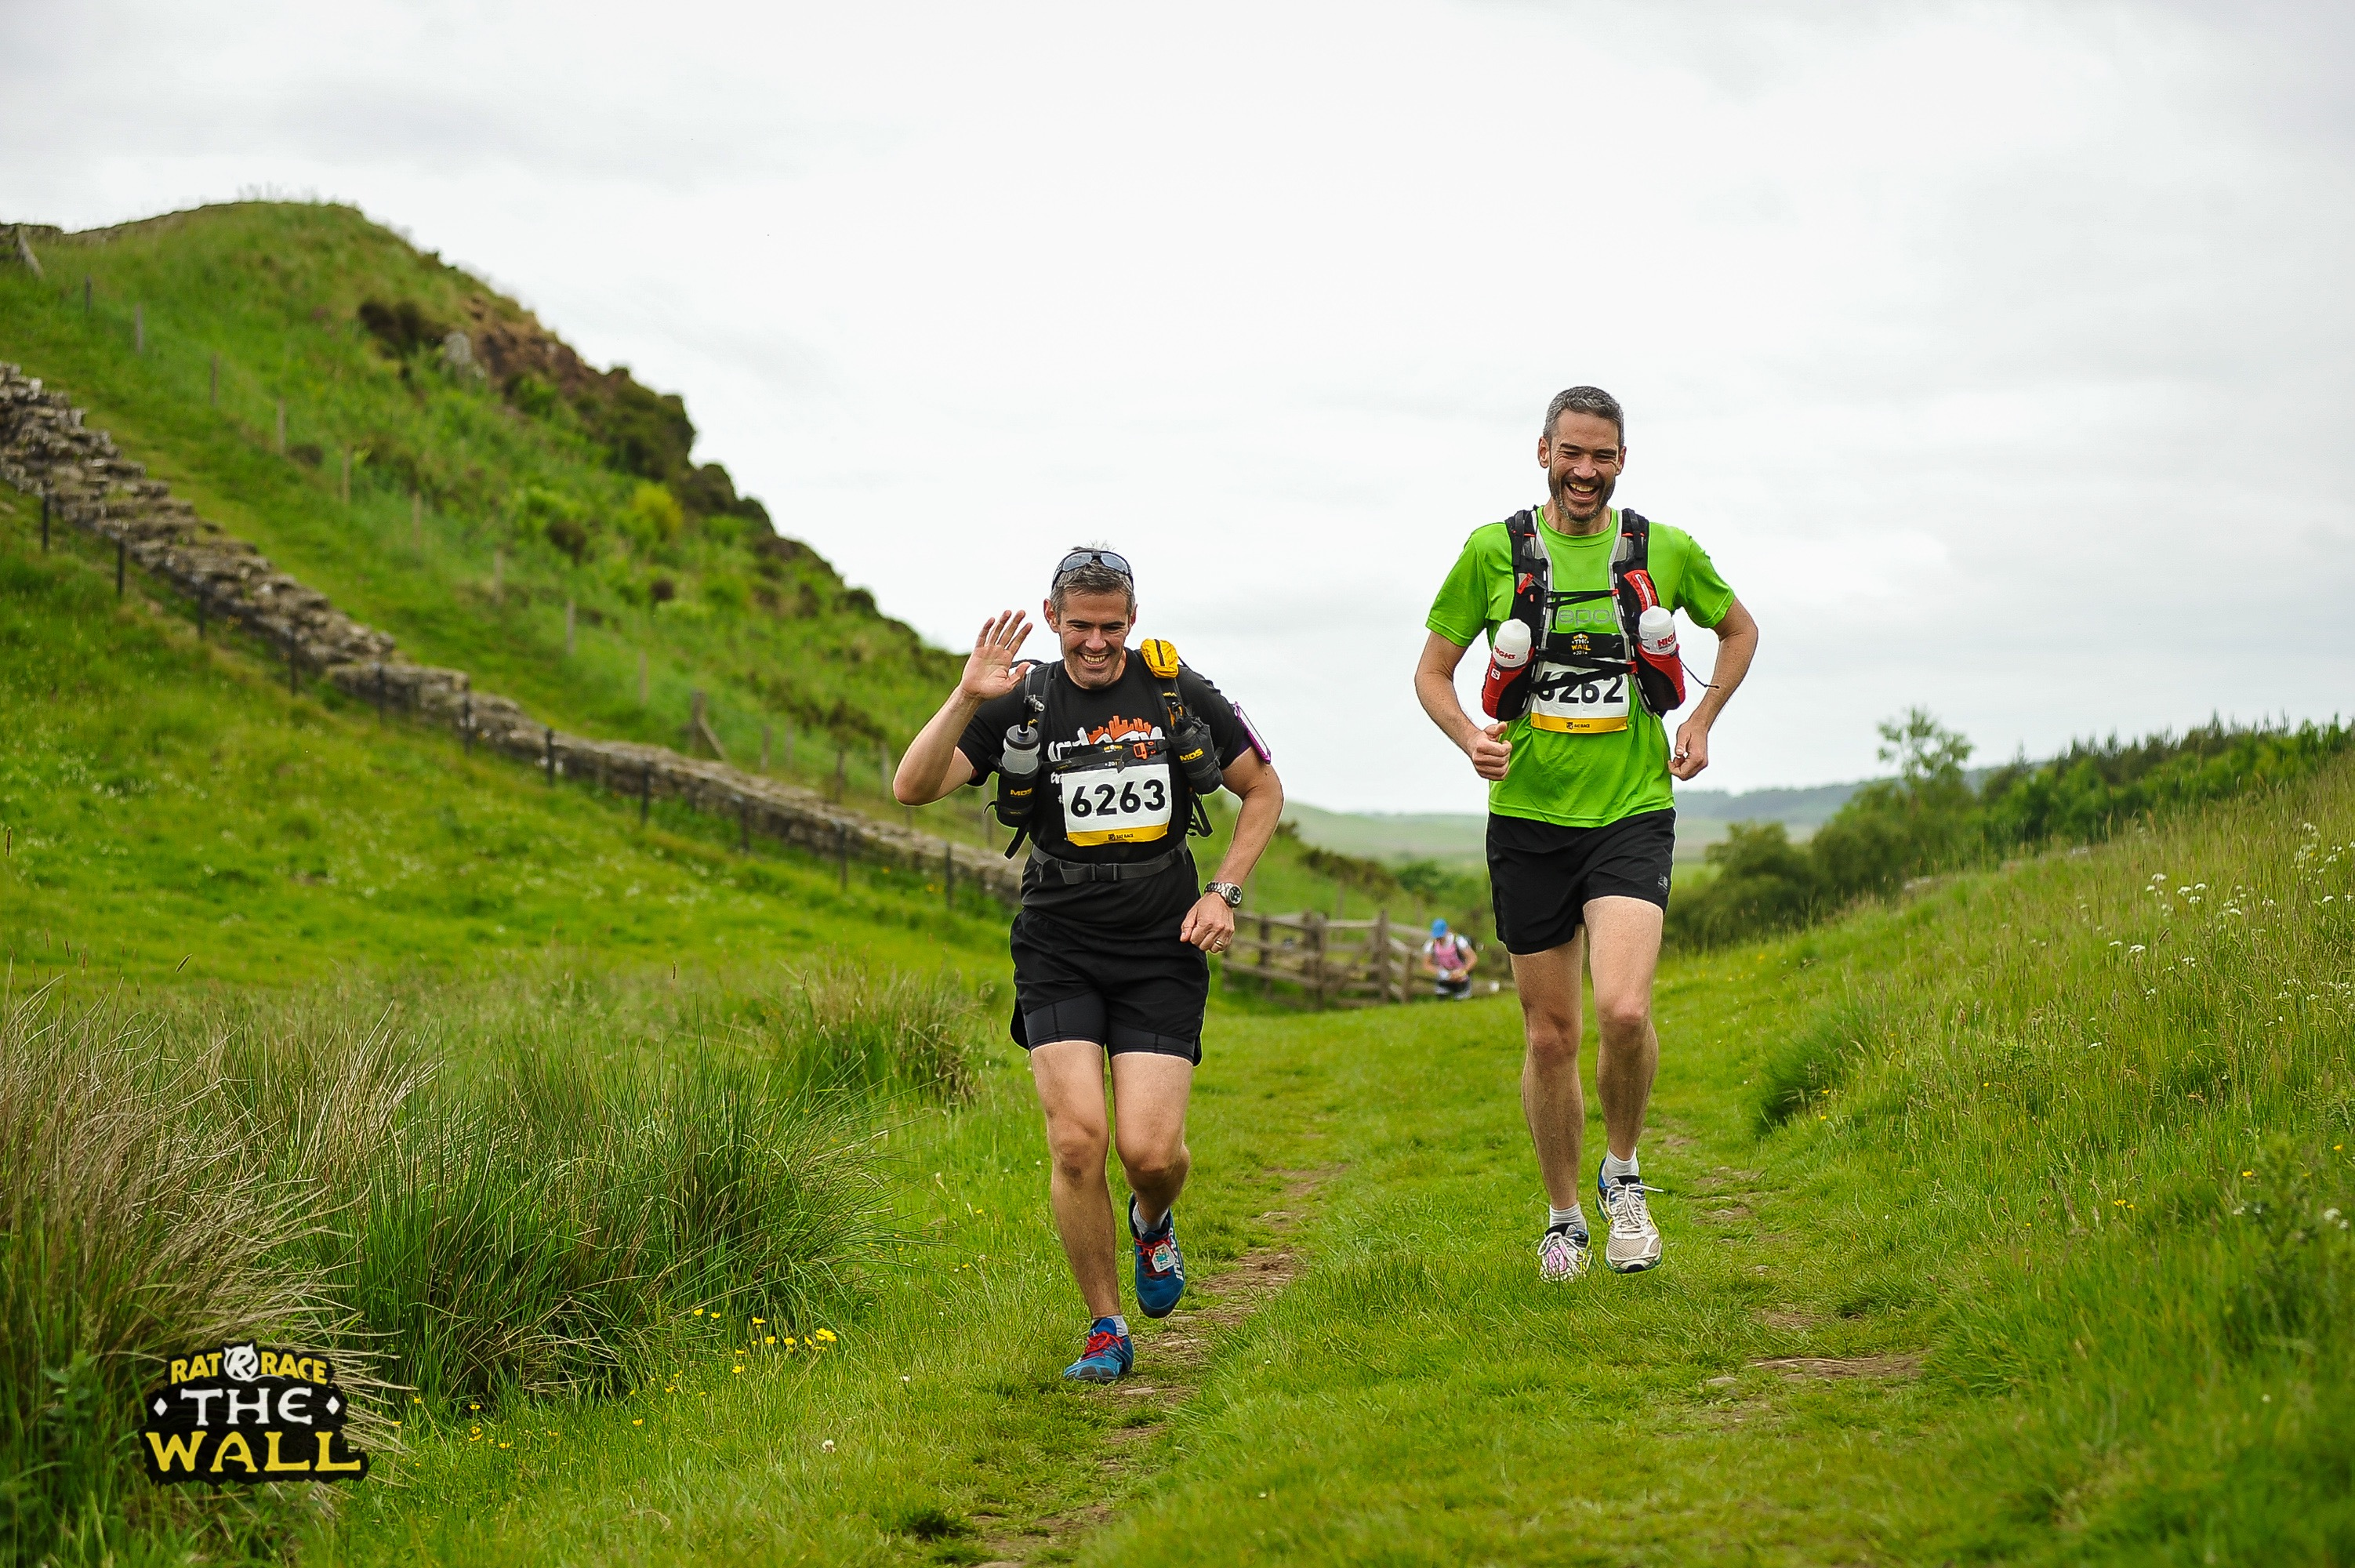 Gruelling Hadrian's Wall race pays off in the long run for Bath financial adviser